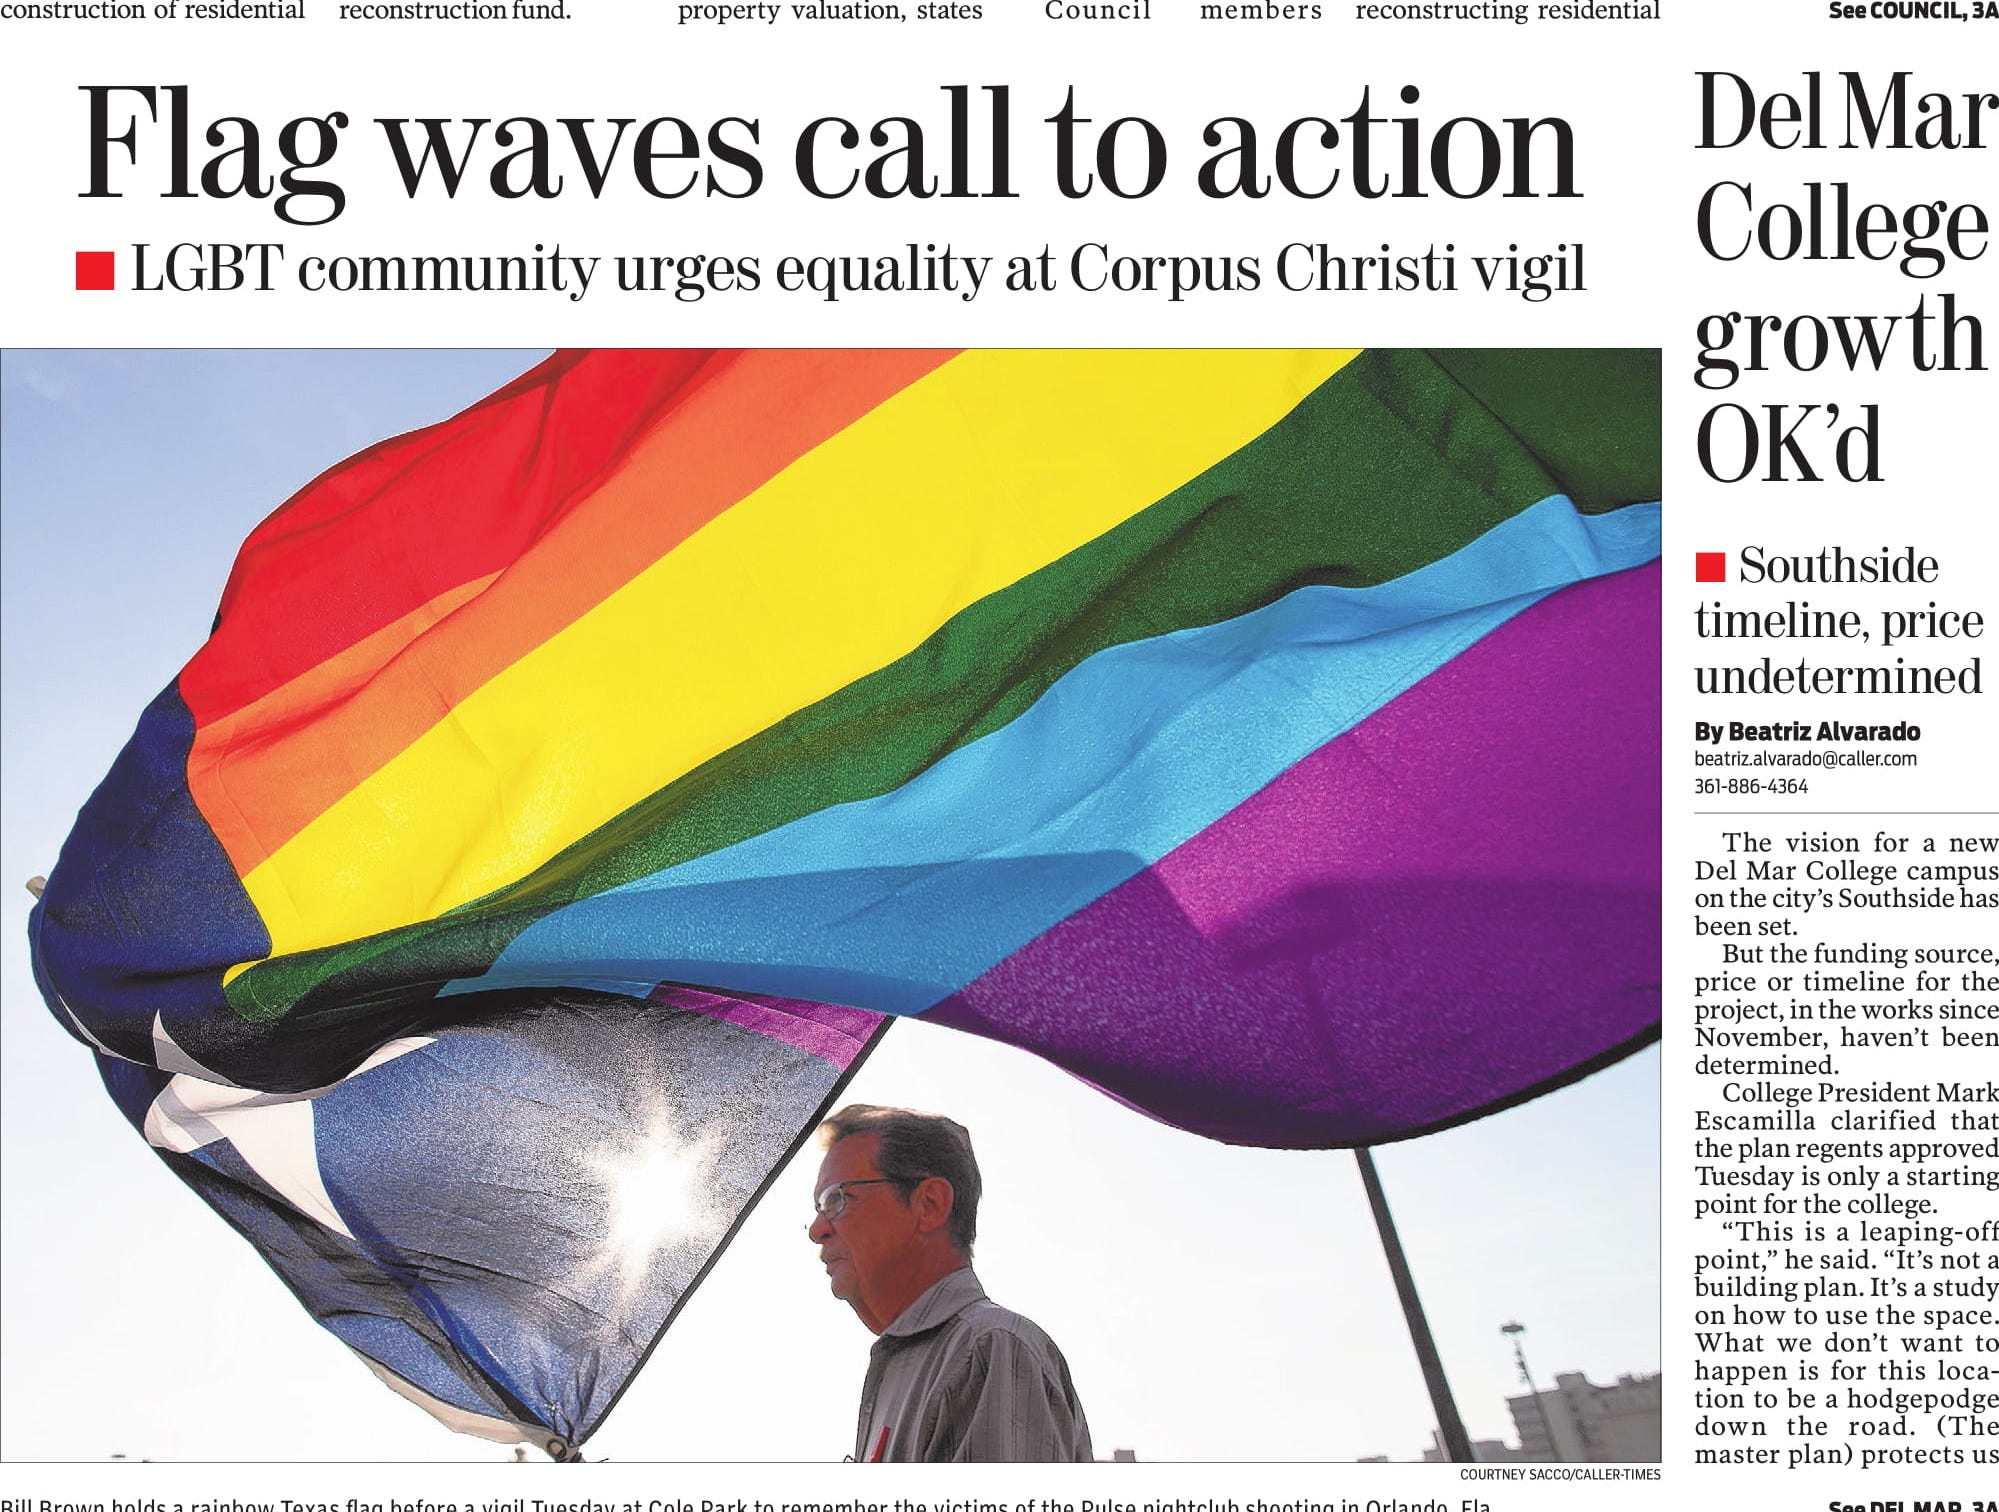 The front page of the Caller-Times on June 16, 2016 featuring a story about local LGBT advocates calling for unity and equality after the Pulse nightclub shooting.